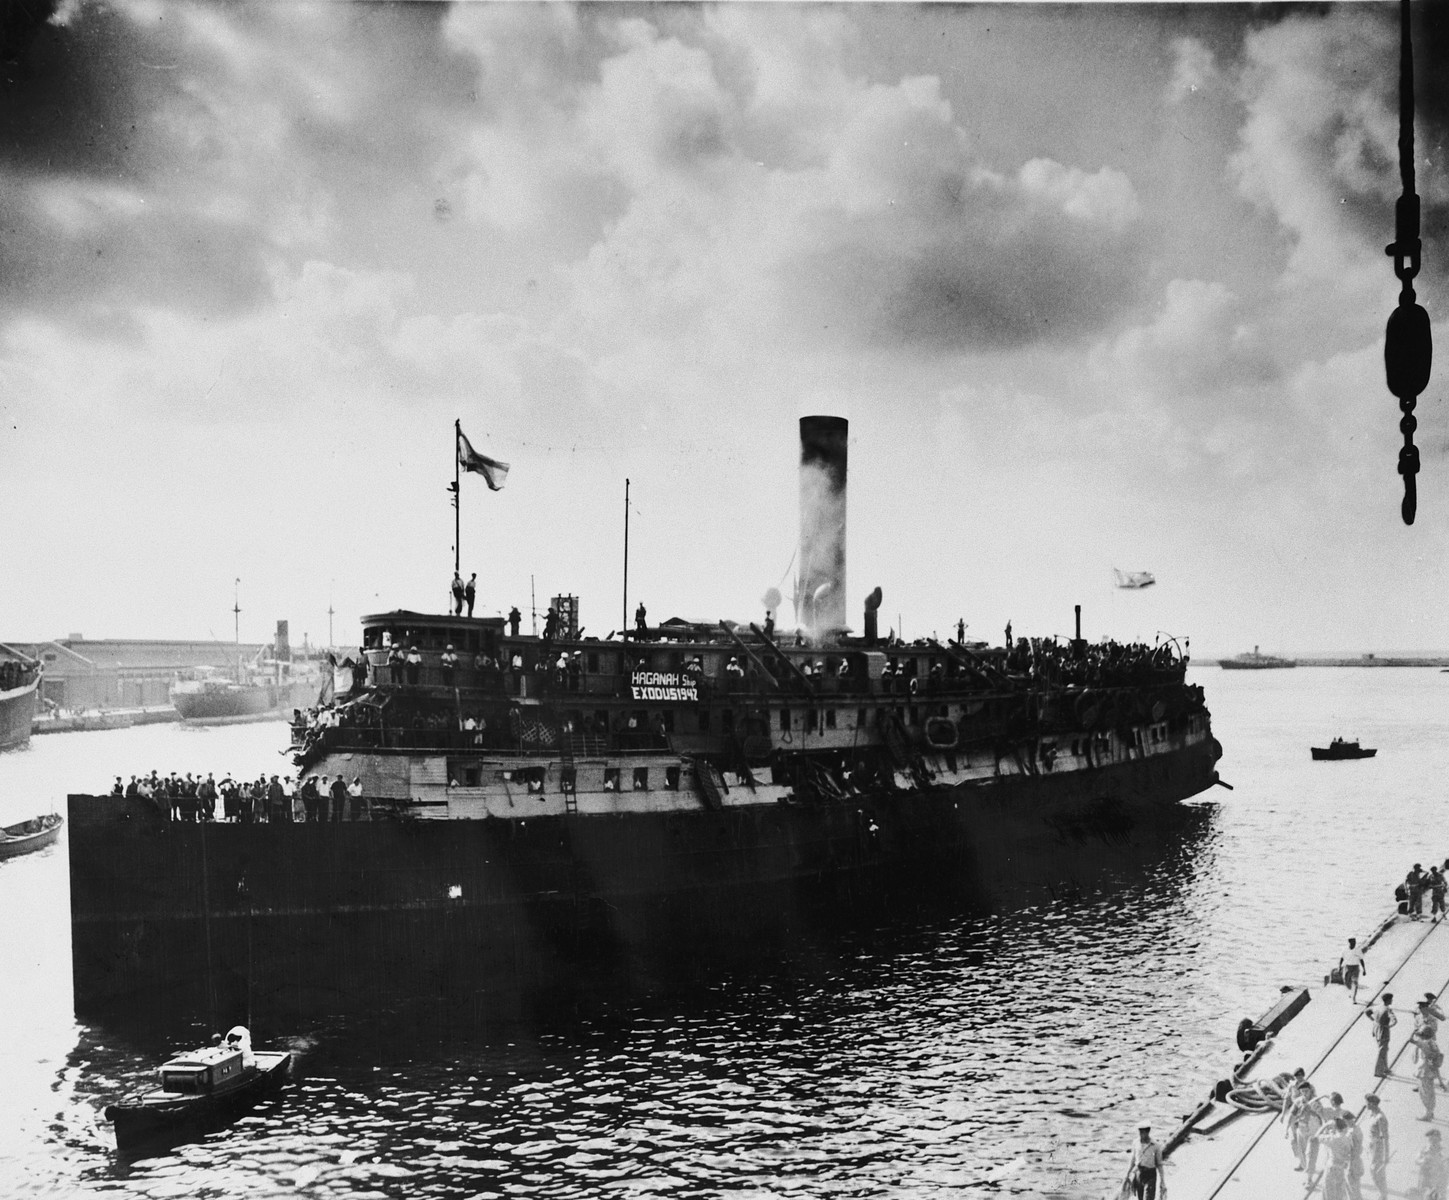 View of the Exodus 1947 arriving in Haifa harbor.